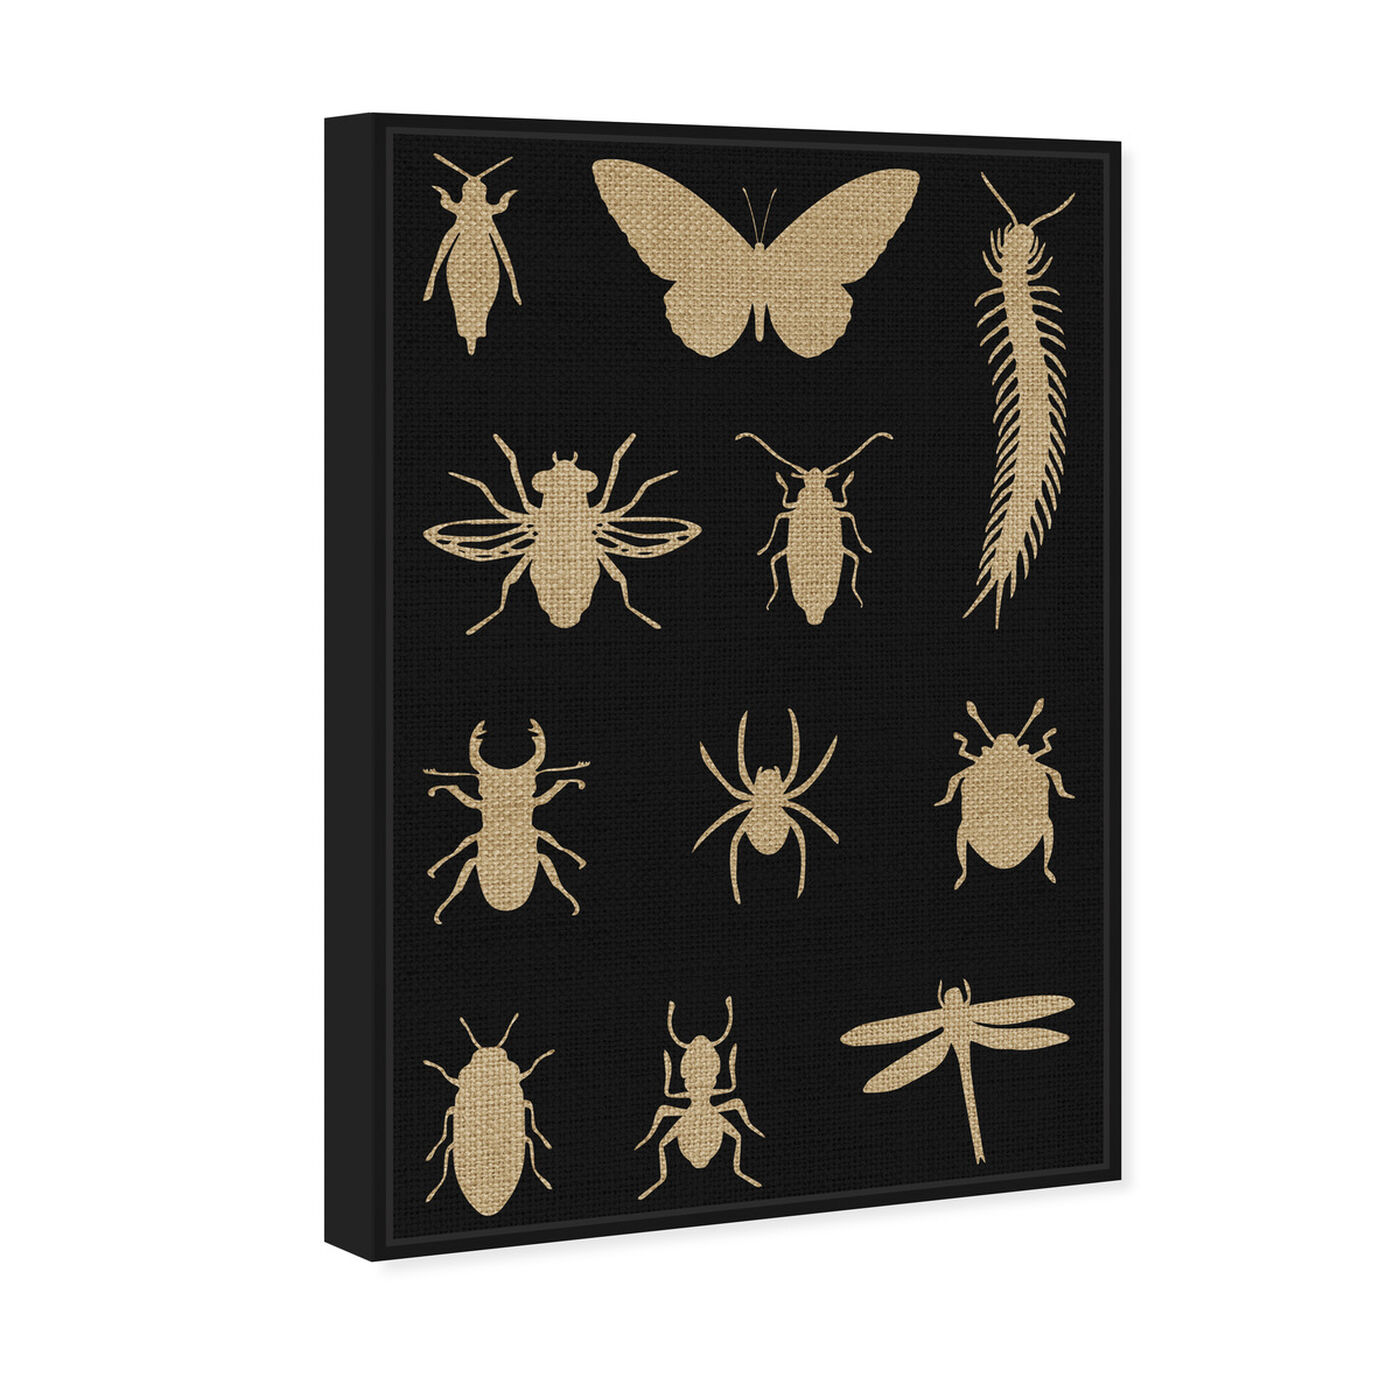 Angled view of Black Creepy Crawlies featuring animals and insects art.